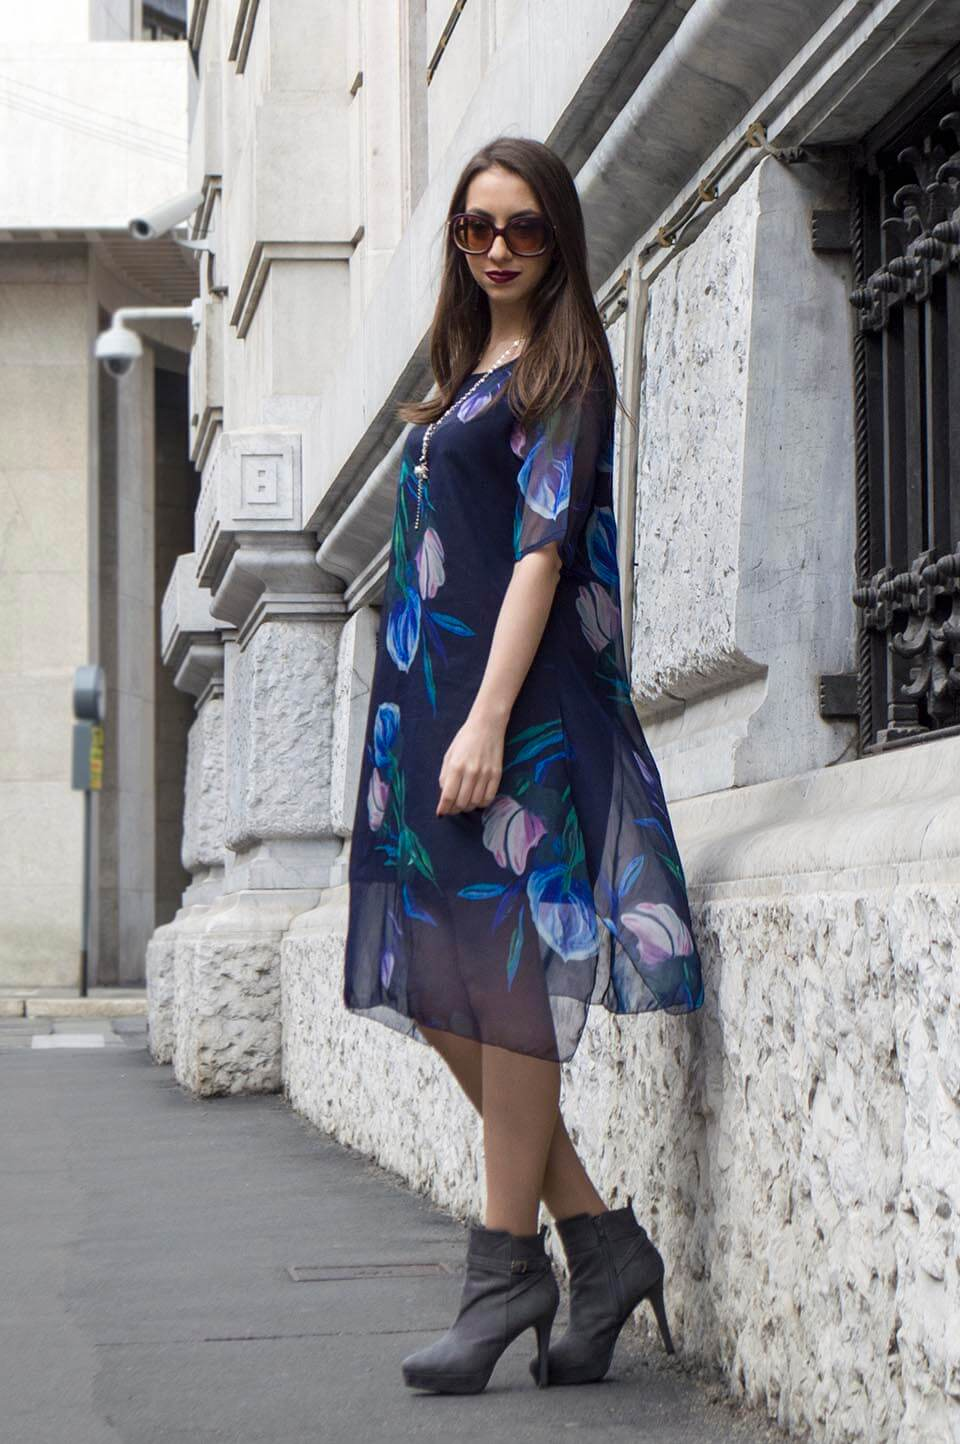 Floral Print dress in Milan